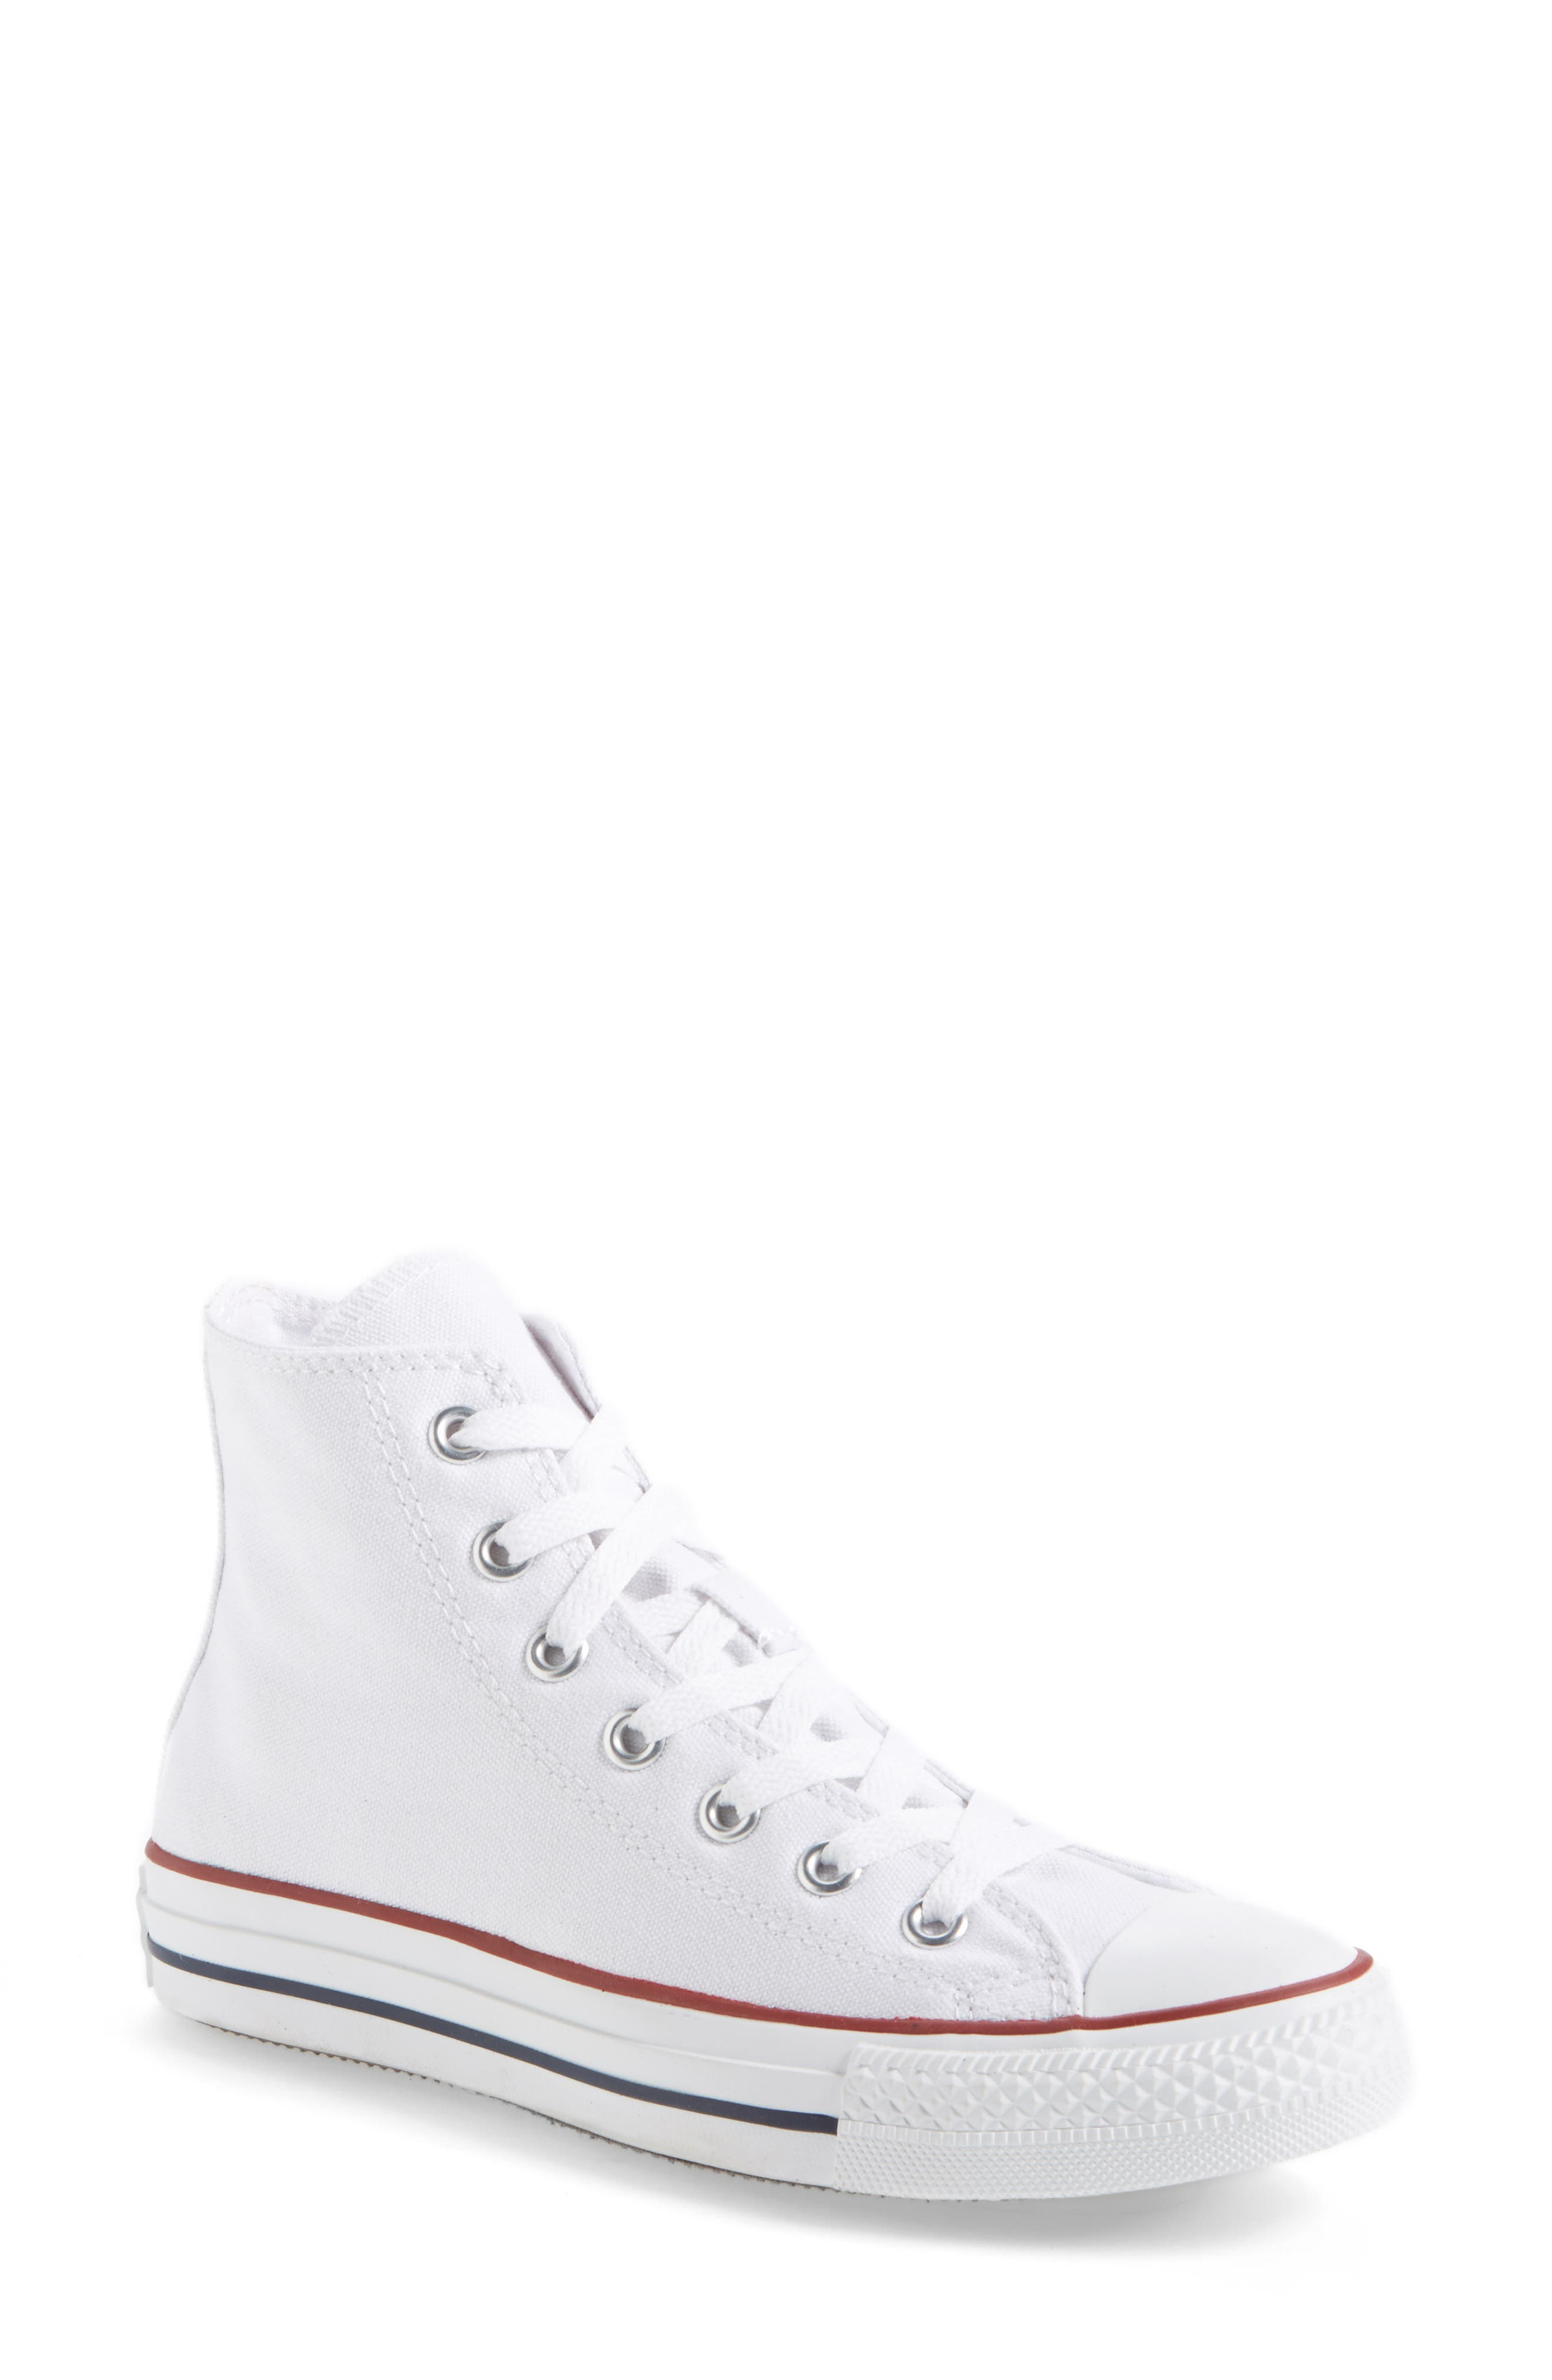 Chuck Taylor<sup>®</sup> High Top Sneaker,                             Main thumbnail 1, color,                             OPTIC WHITE